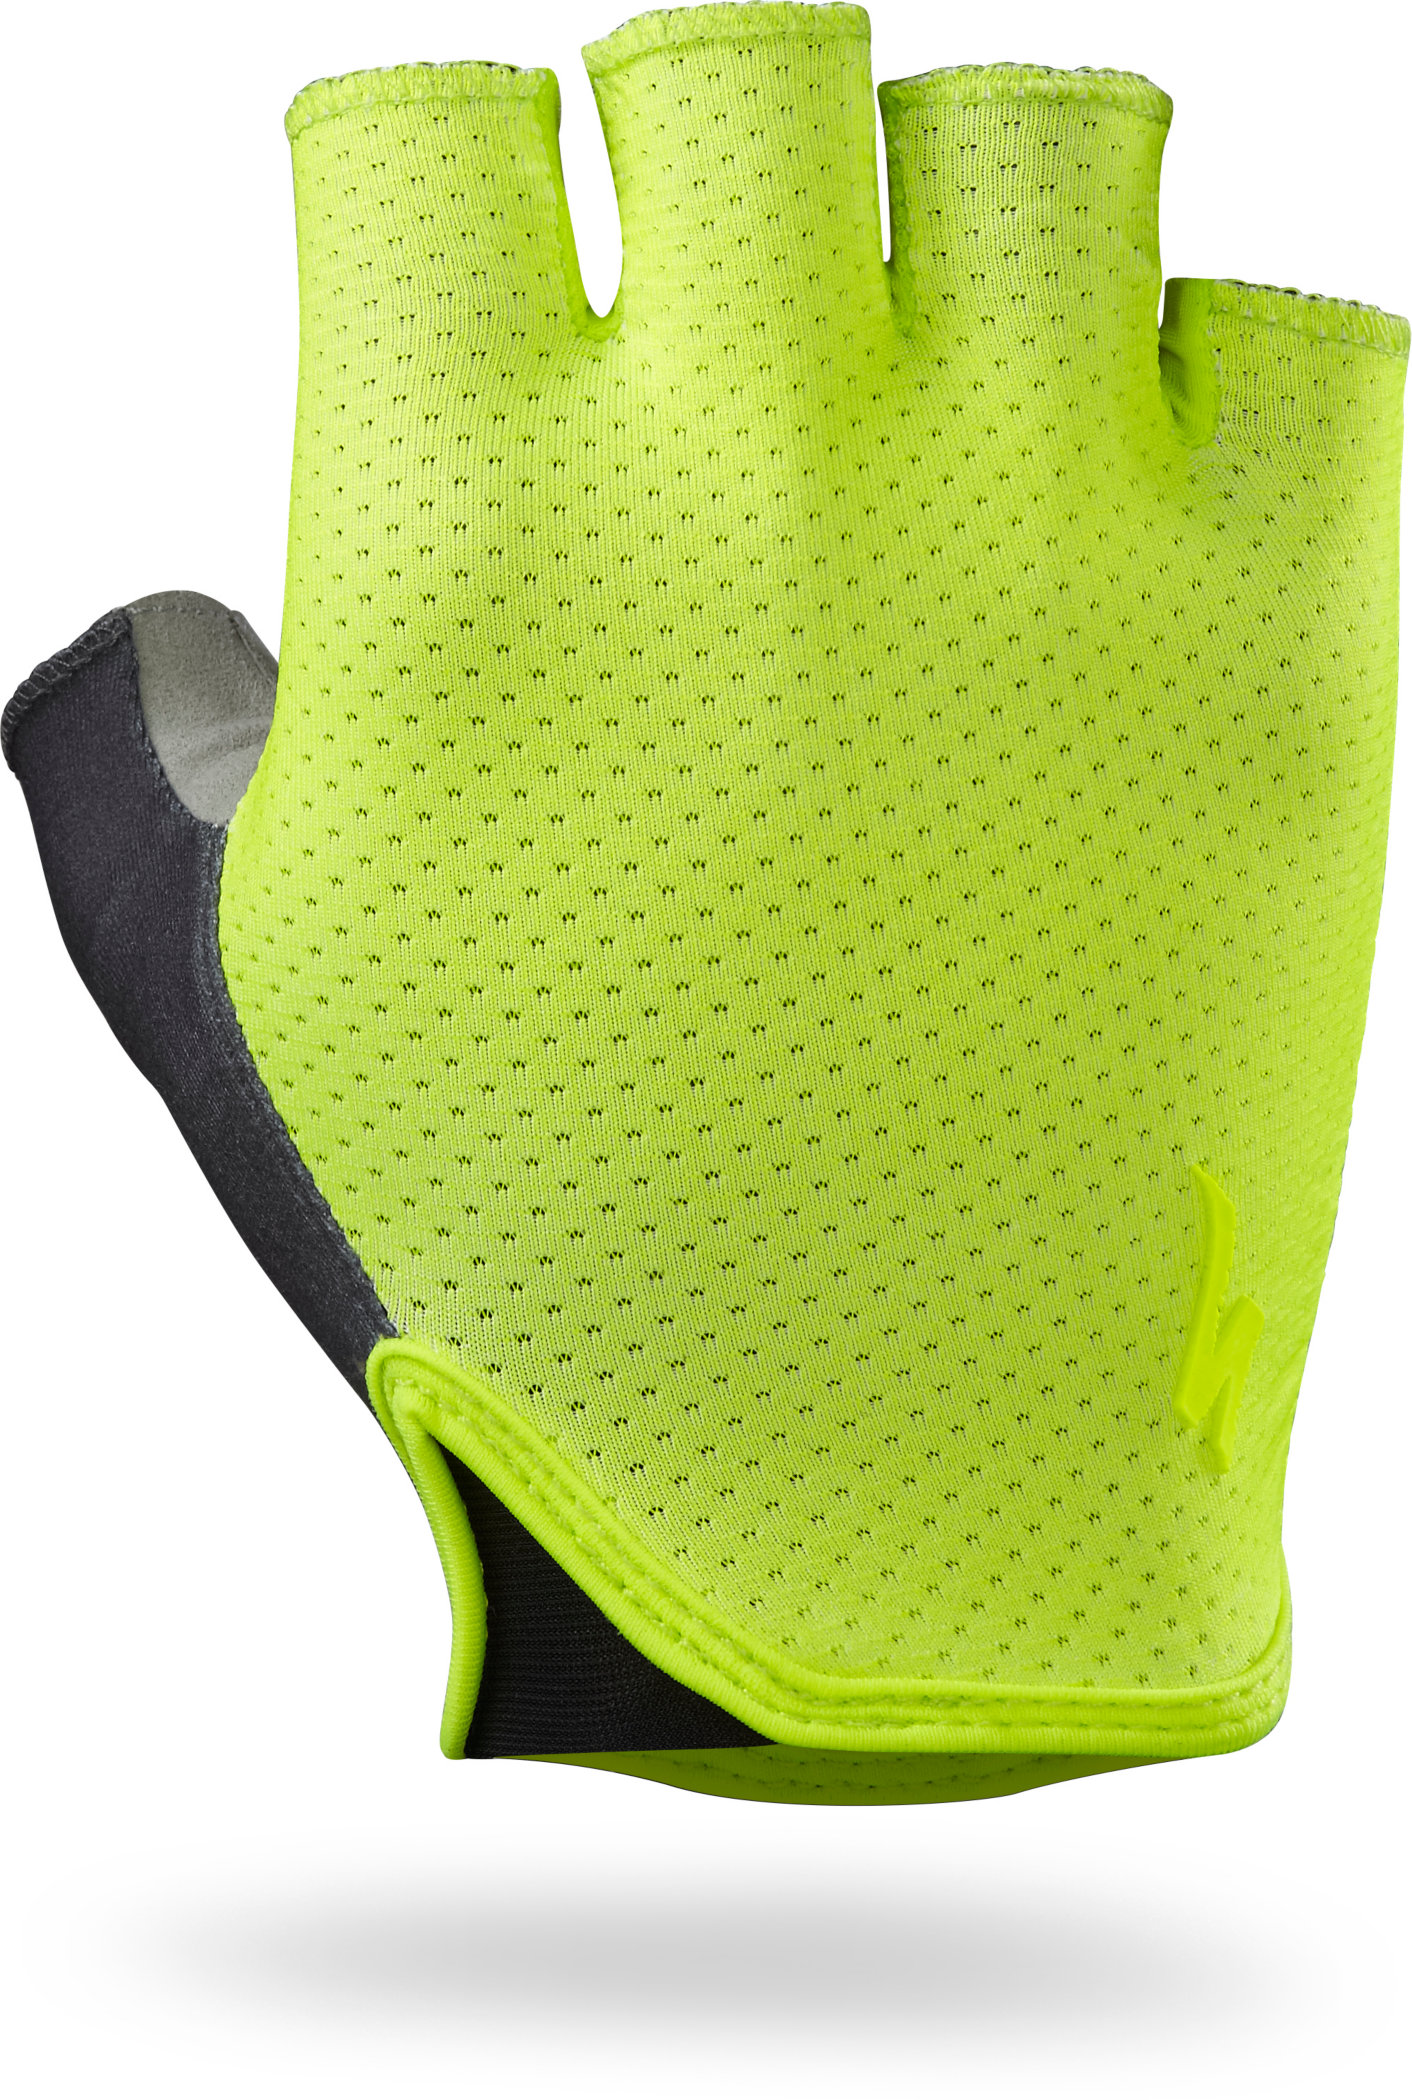 SPECIALIZED BG GRAIL GLOVE SF NEON YEL L - Bikedreams & Dustbikes